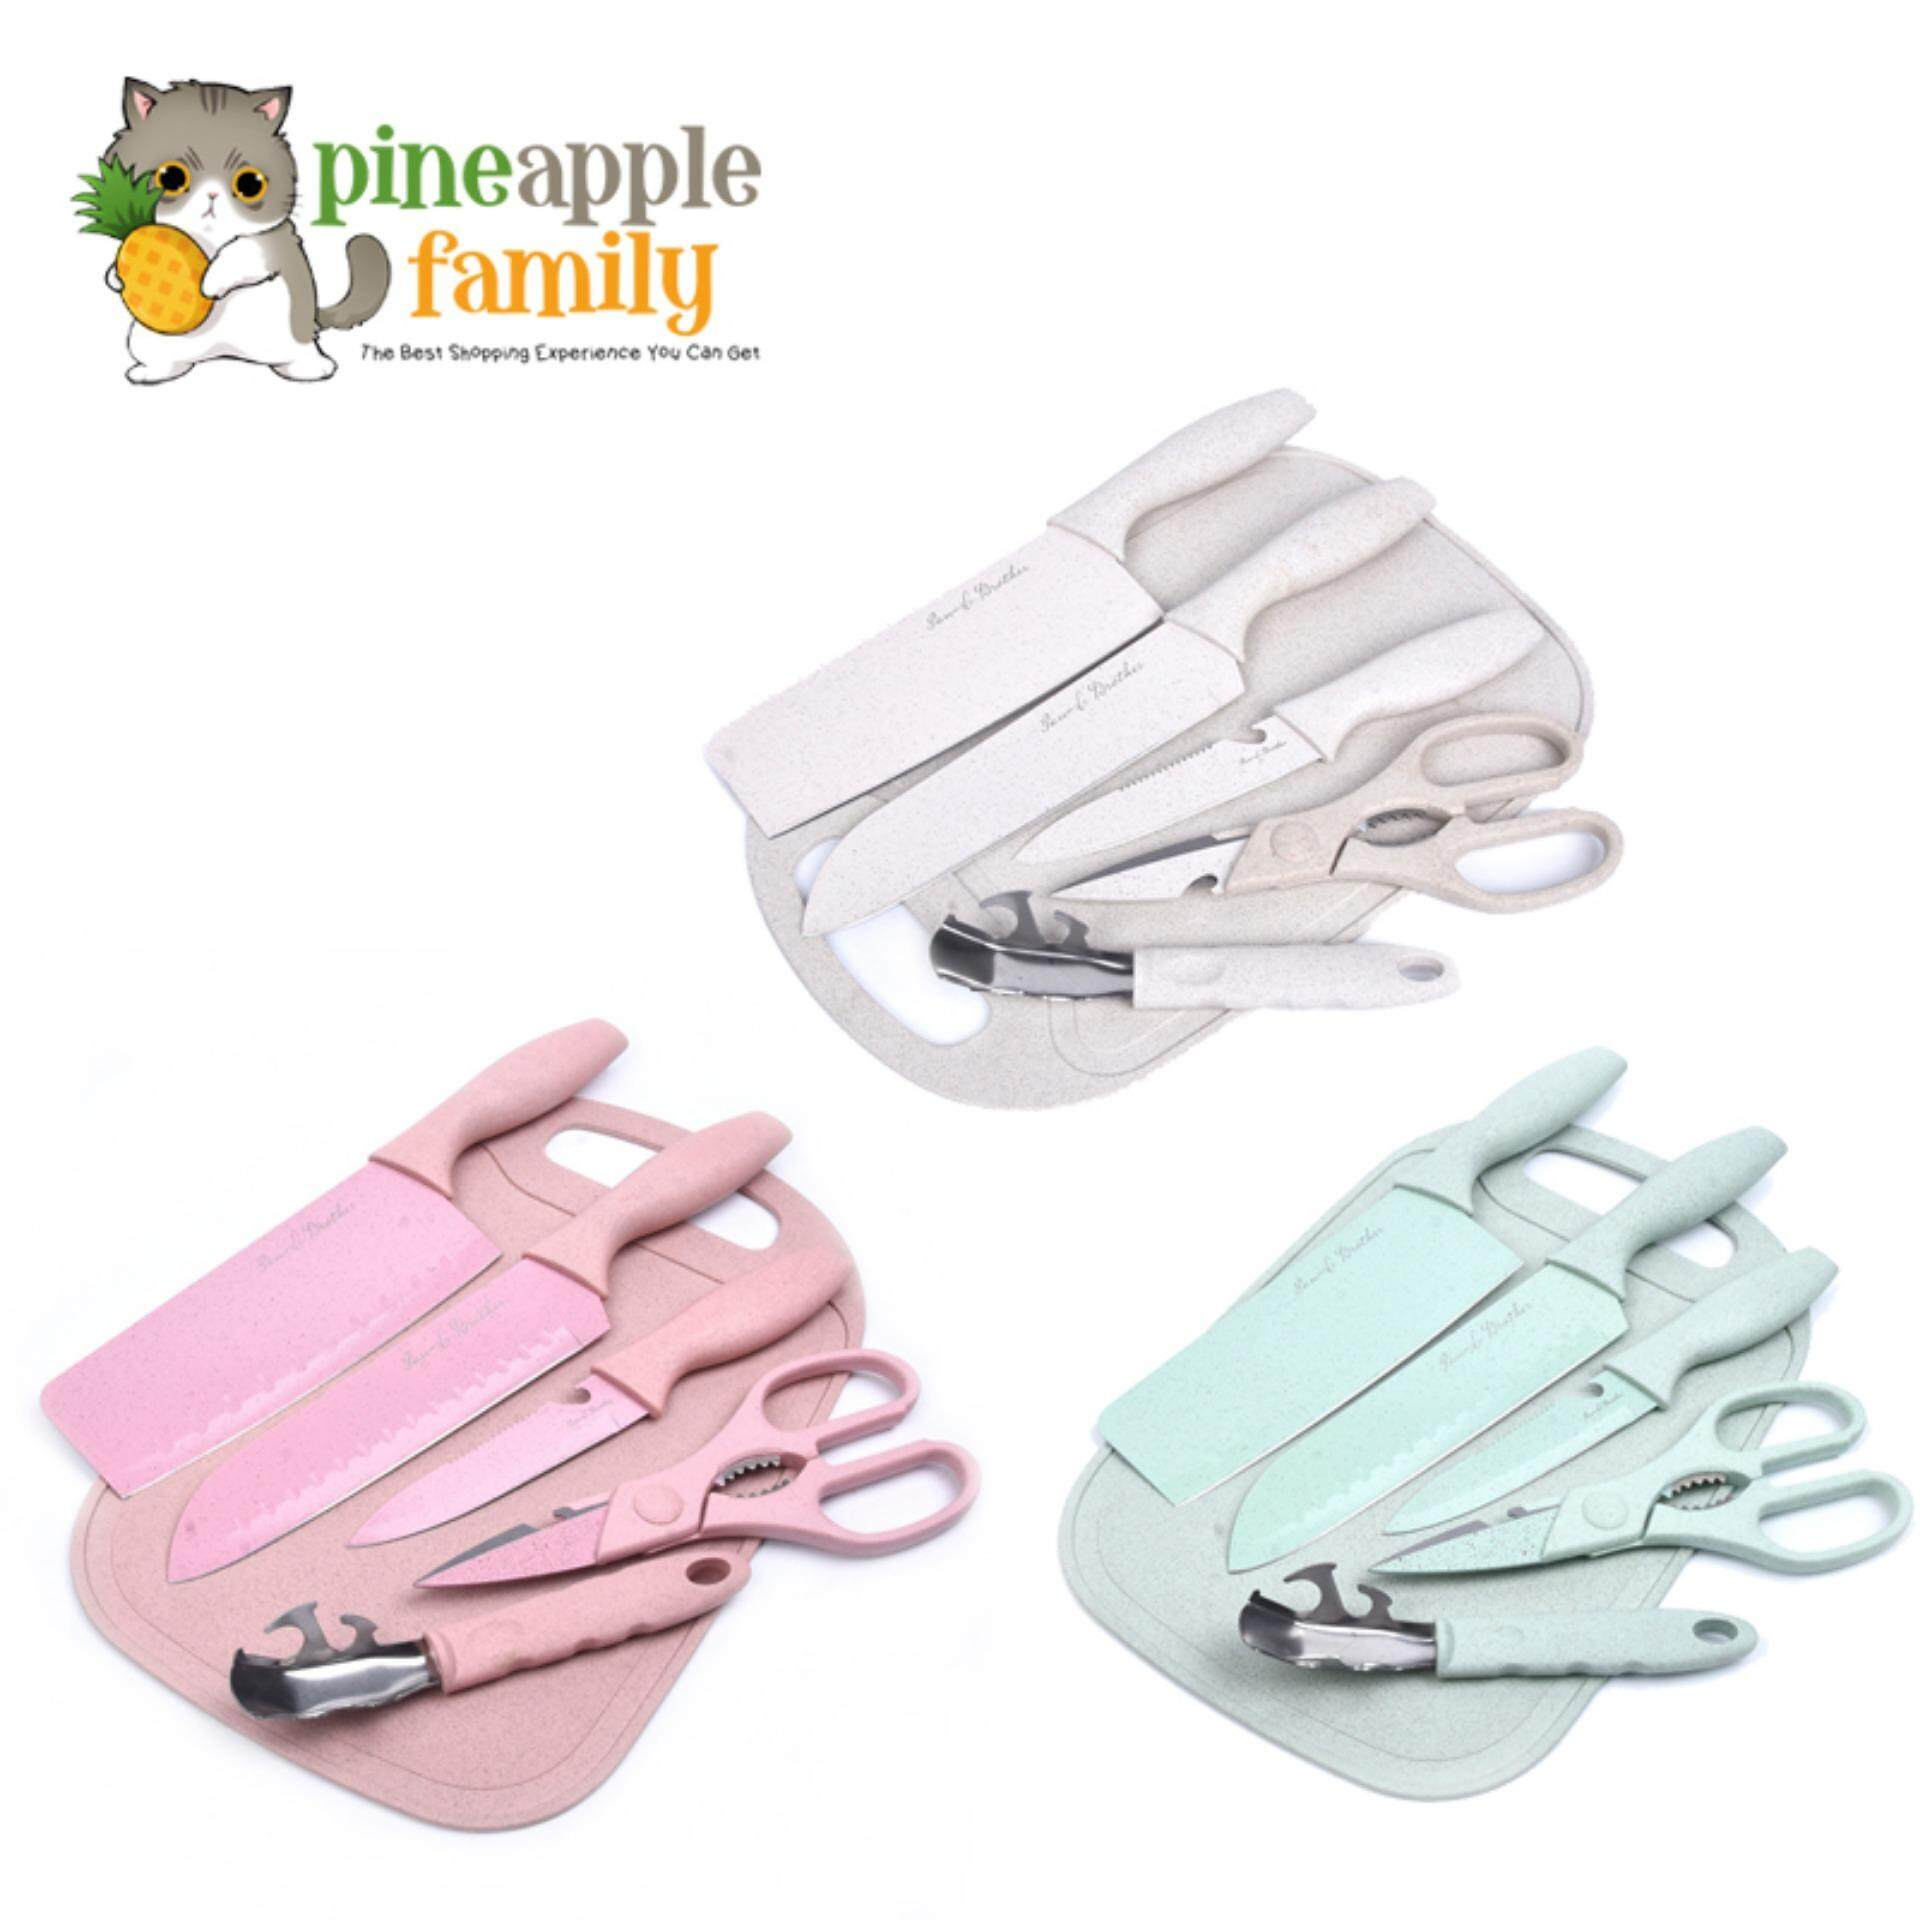 6pcs Wheat Straw Stainless Steel Kitchen Knife Set With 1 Chopper Board By Pineapple Family.